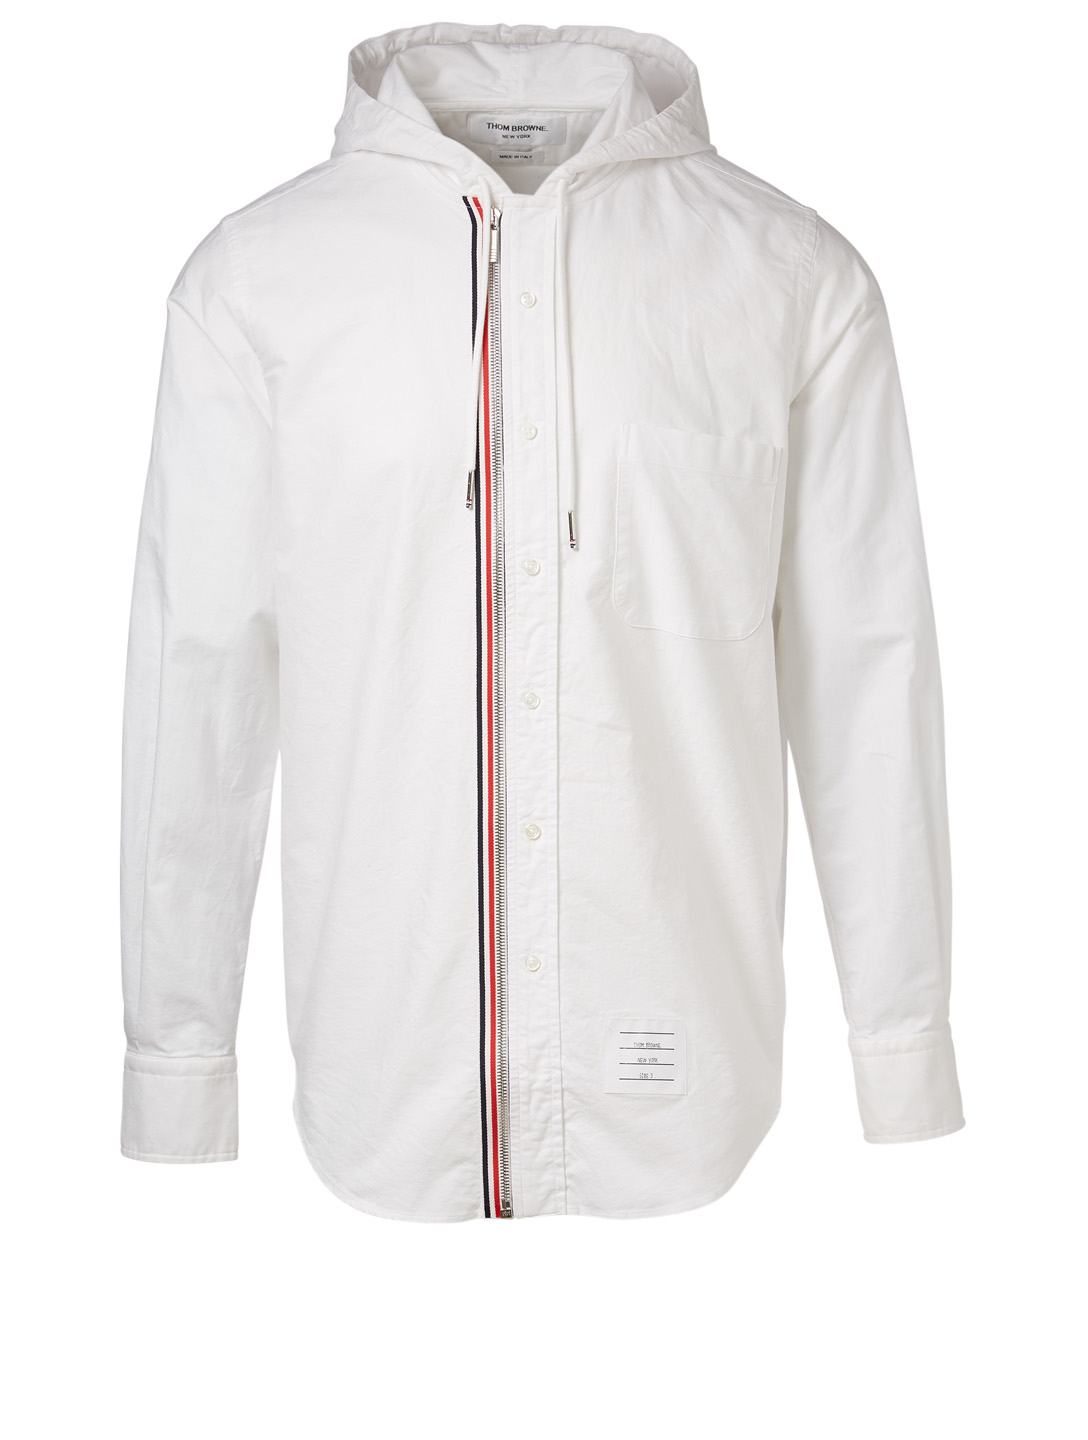 THOM BROWNE Hooded Zip-Front Shirt Men's White